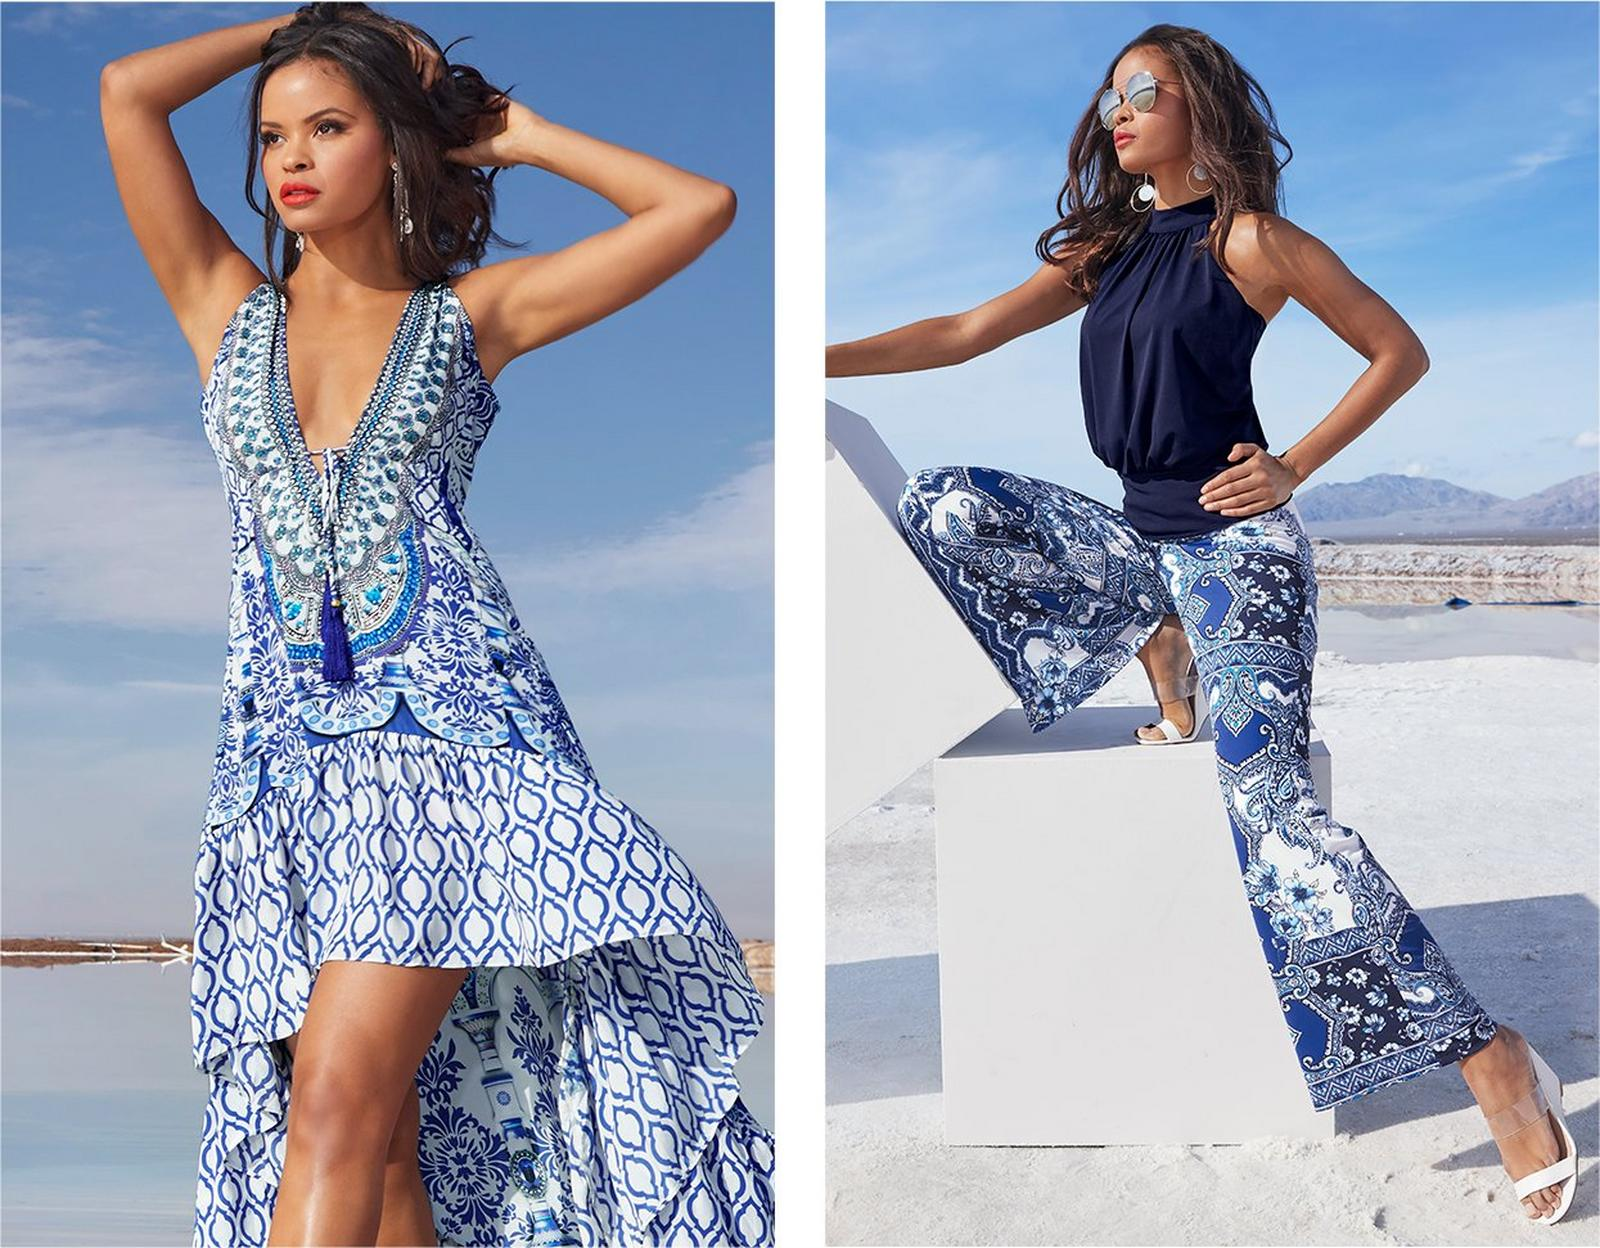 left model wearing a tile print blue and white high-low maxi dress. right model wearing a mock-neck navy sleeveless blouson top, blue tile print palazzo pants, white wedges, and sunglasses.